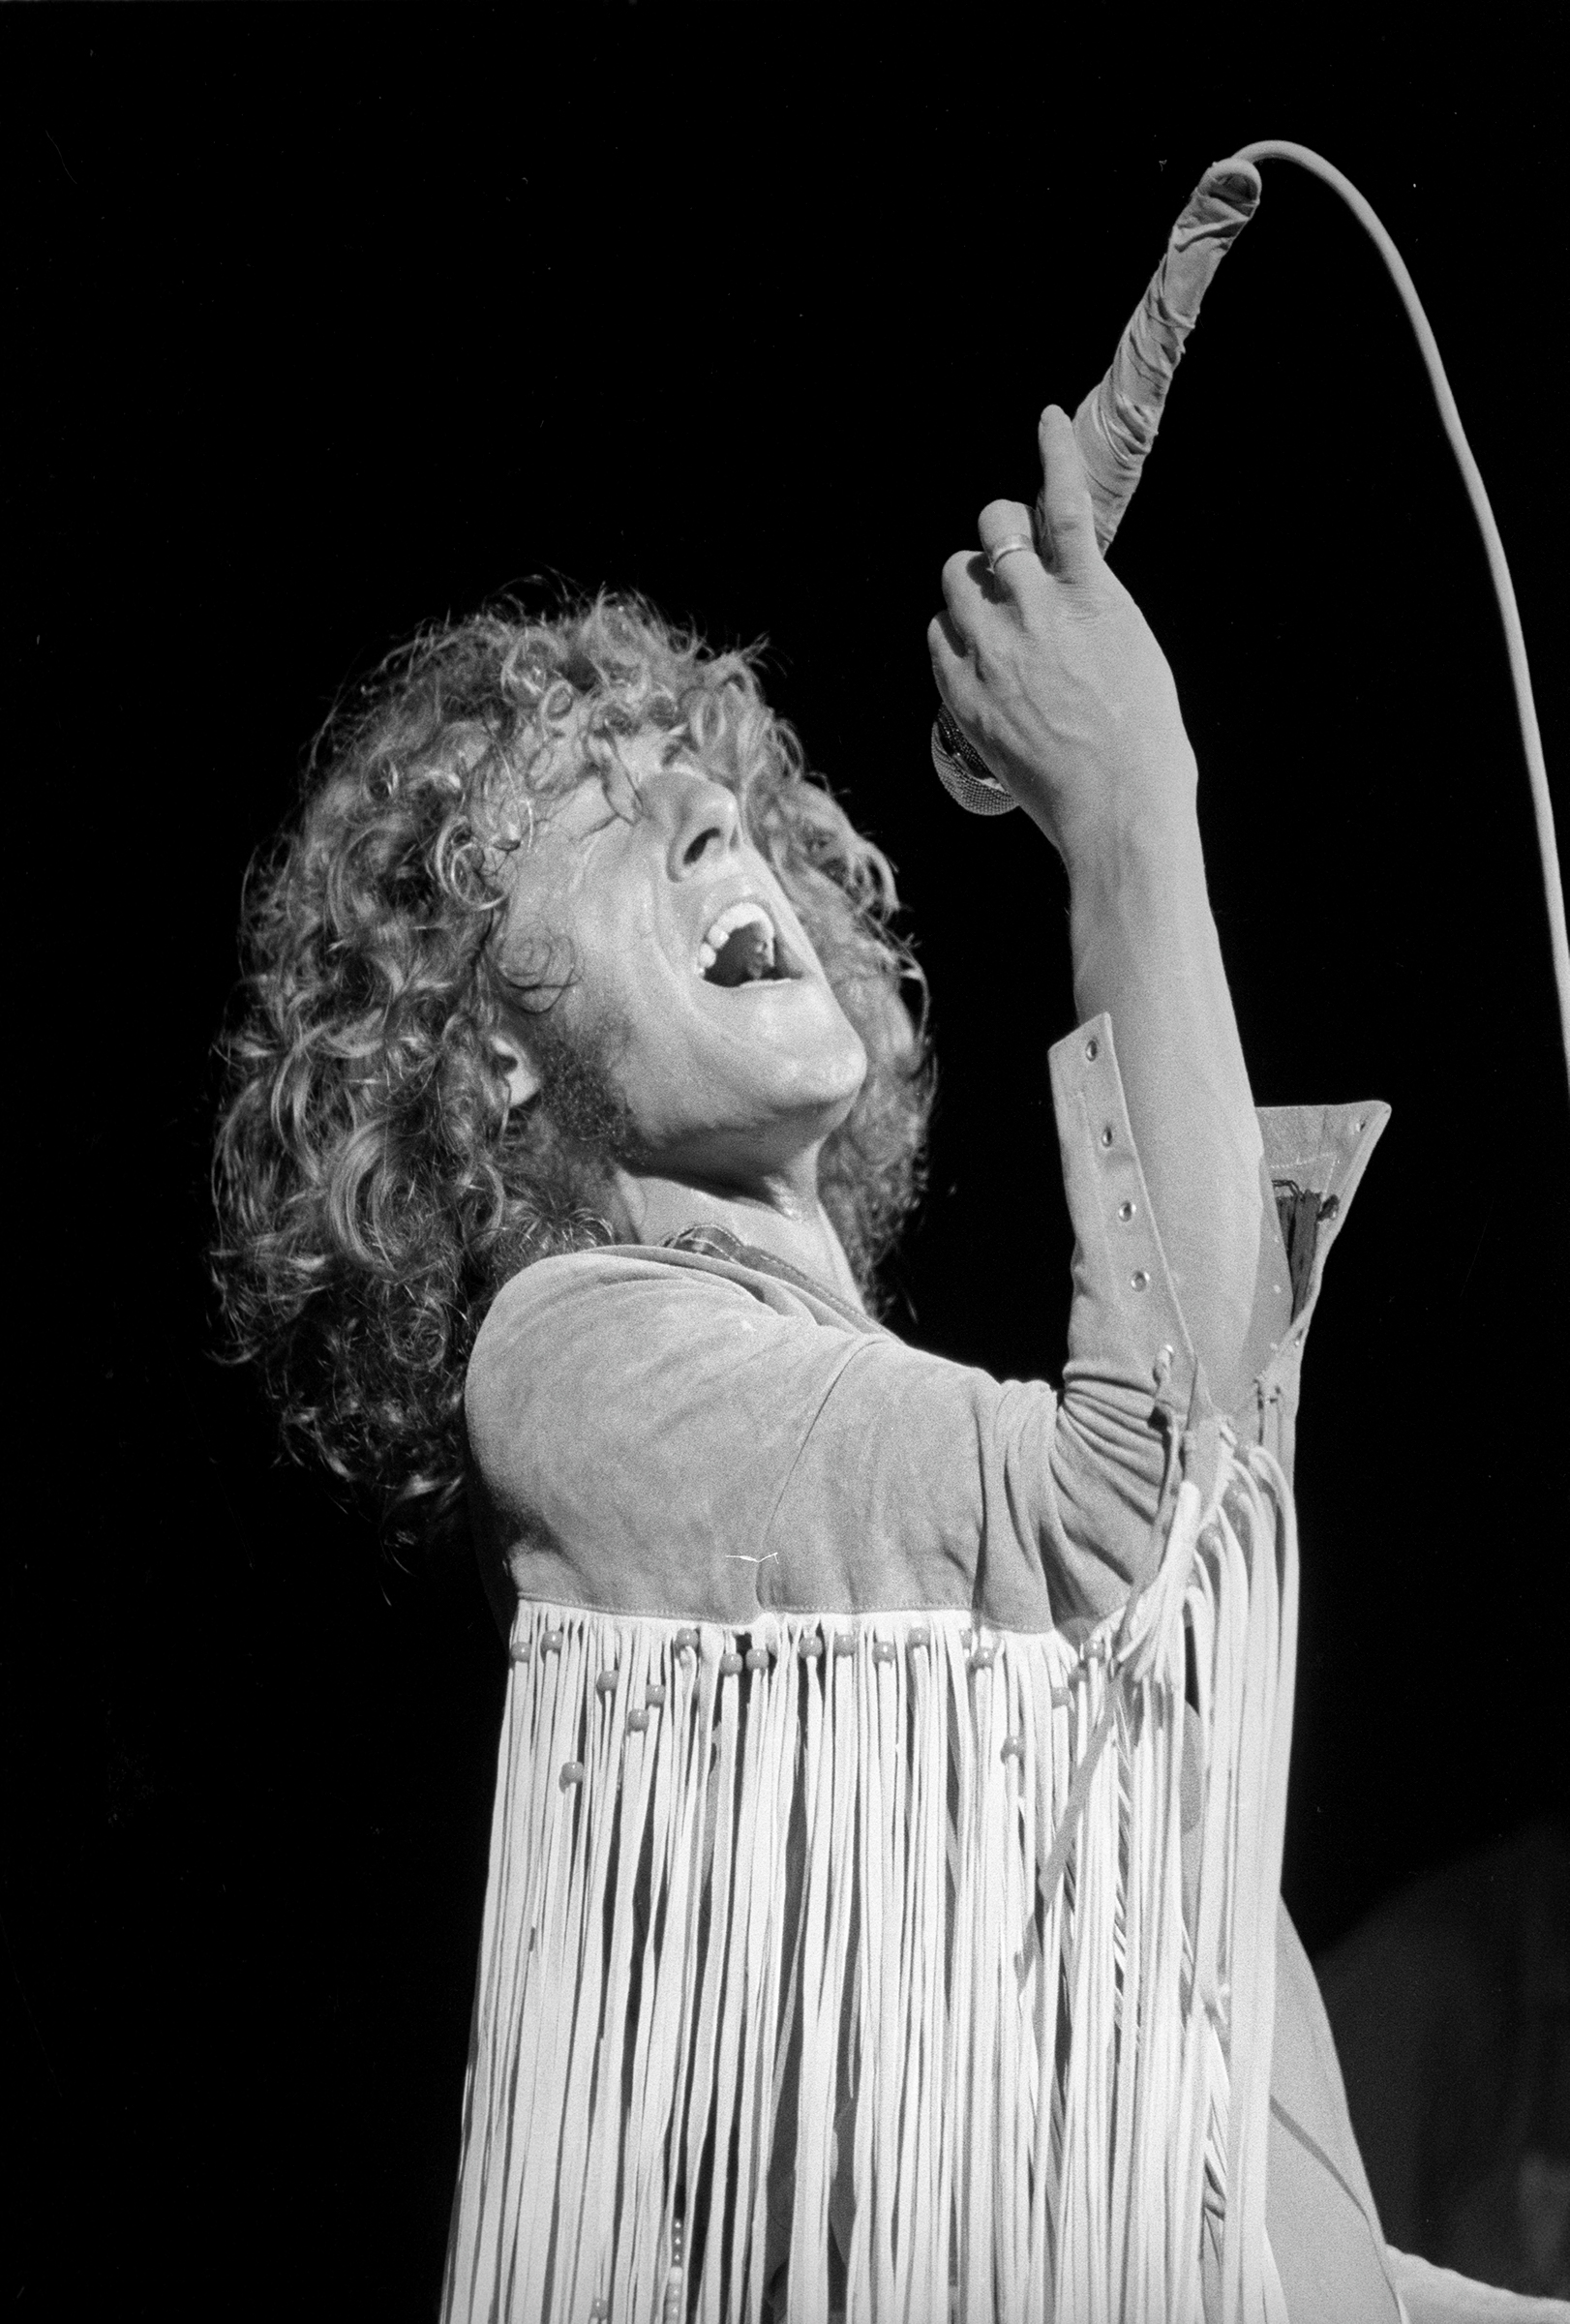 Roger Daltrey Fine Art Print from Woodstock on 15 Aug 69: 16x20 Silver Gelatin